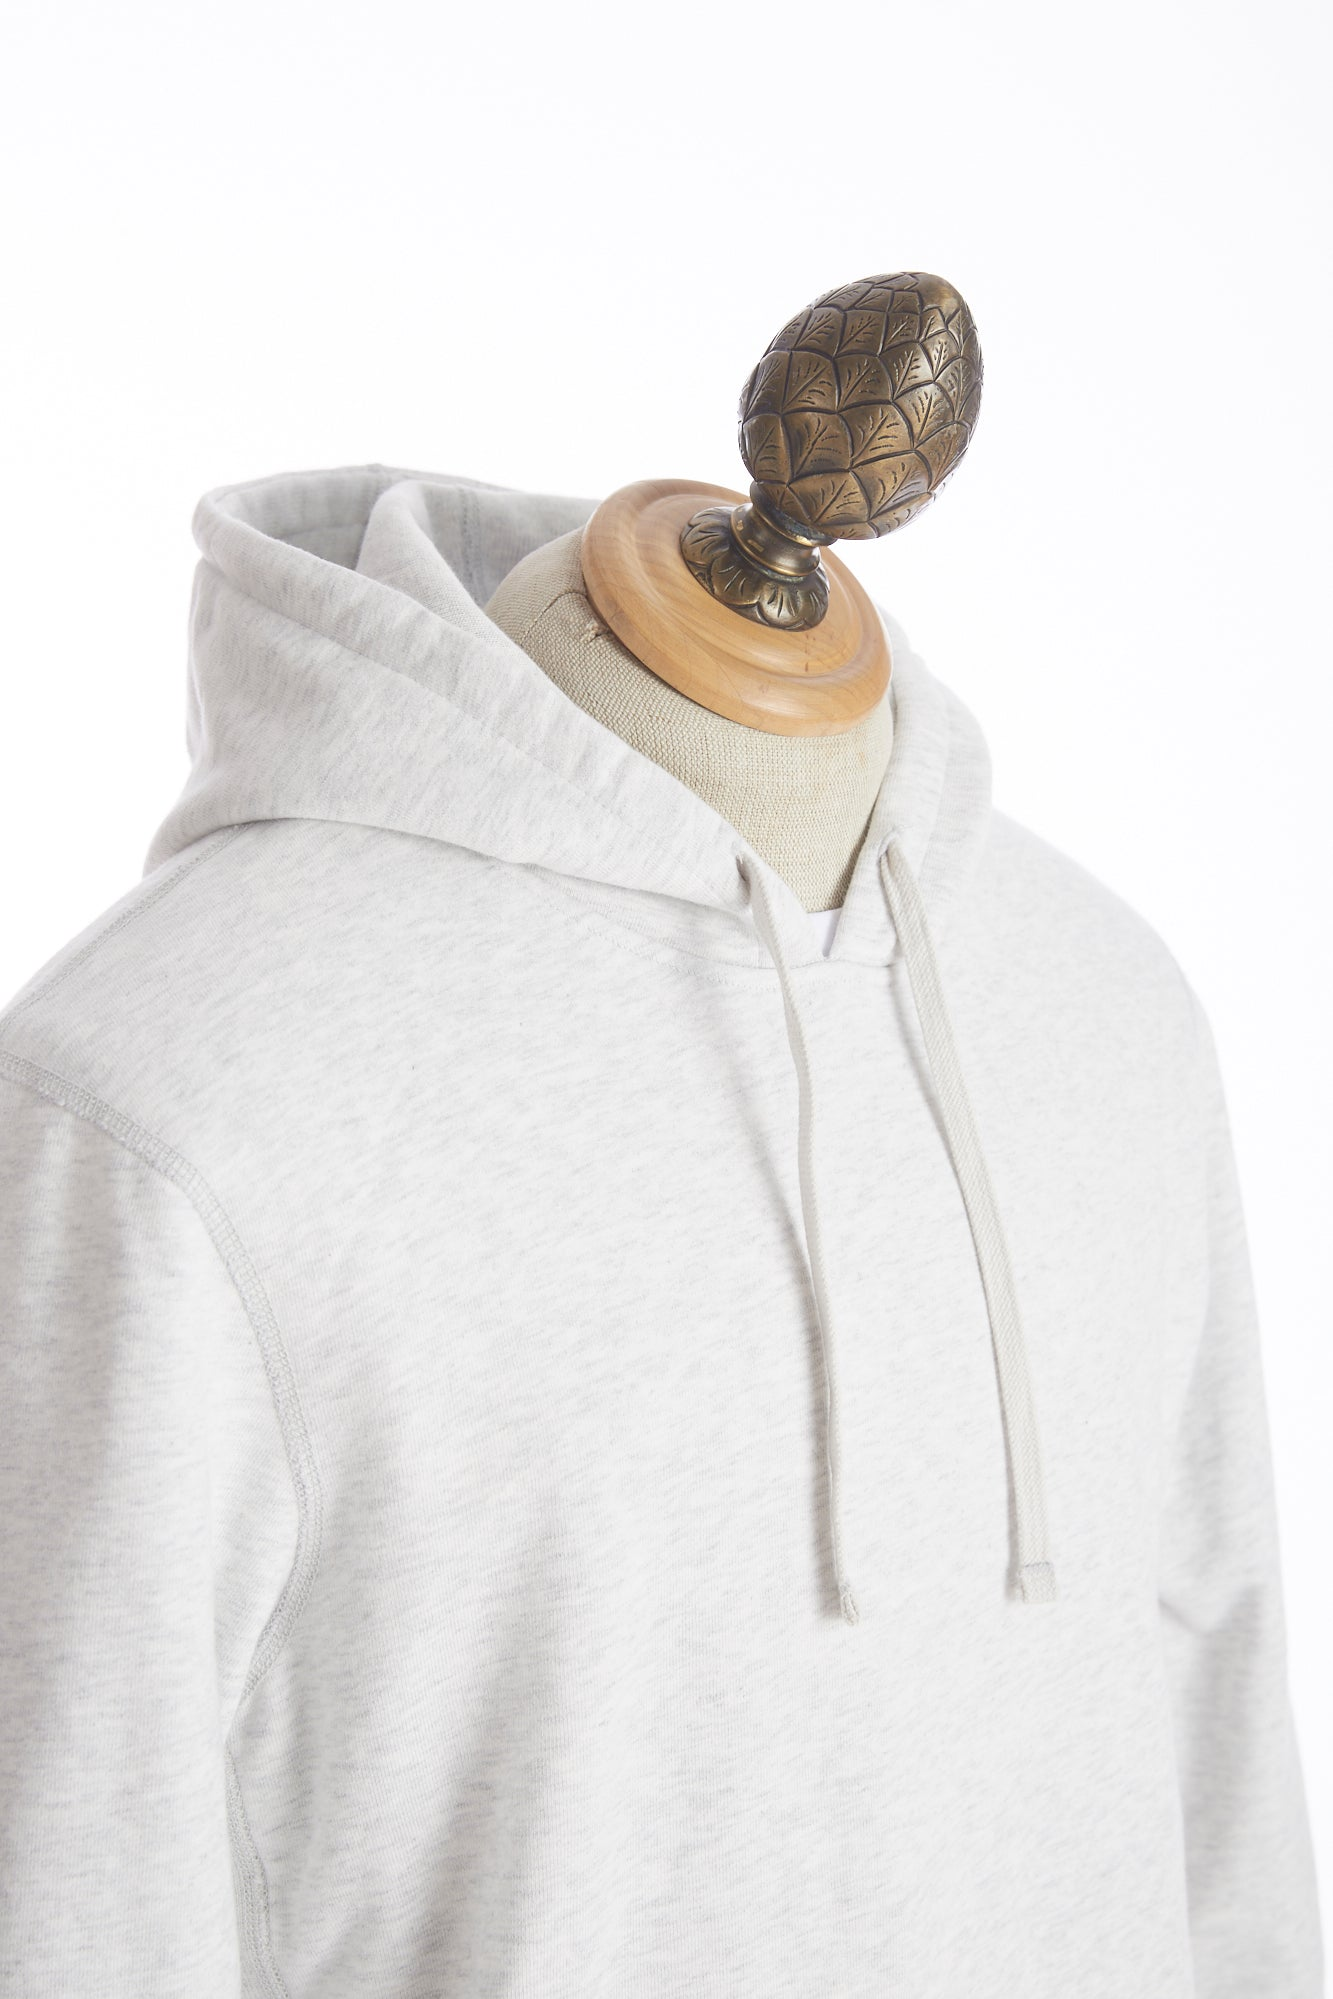 Reigning Champ Heather Ash Side Zip Pullover Hoodie Front